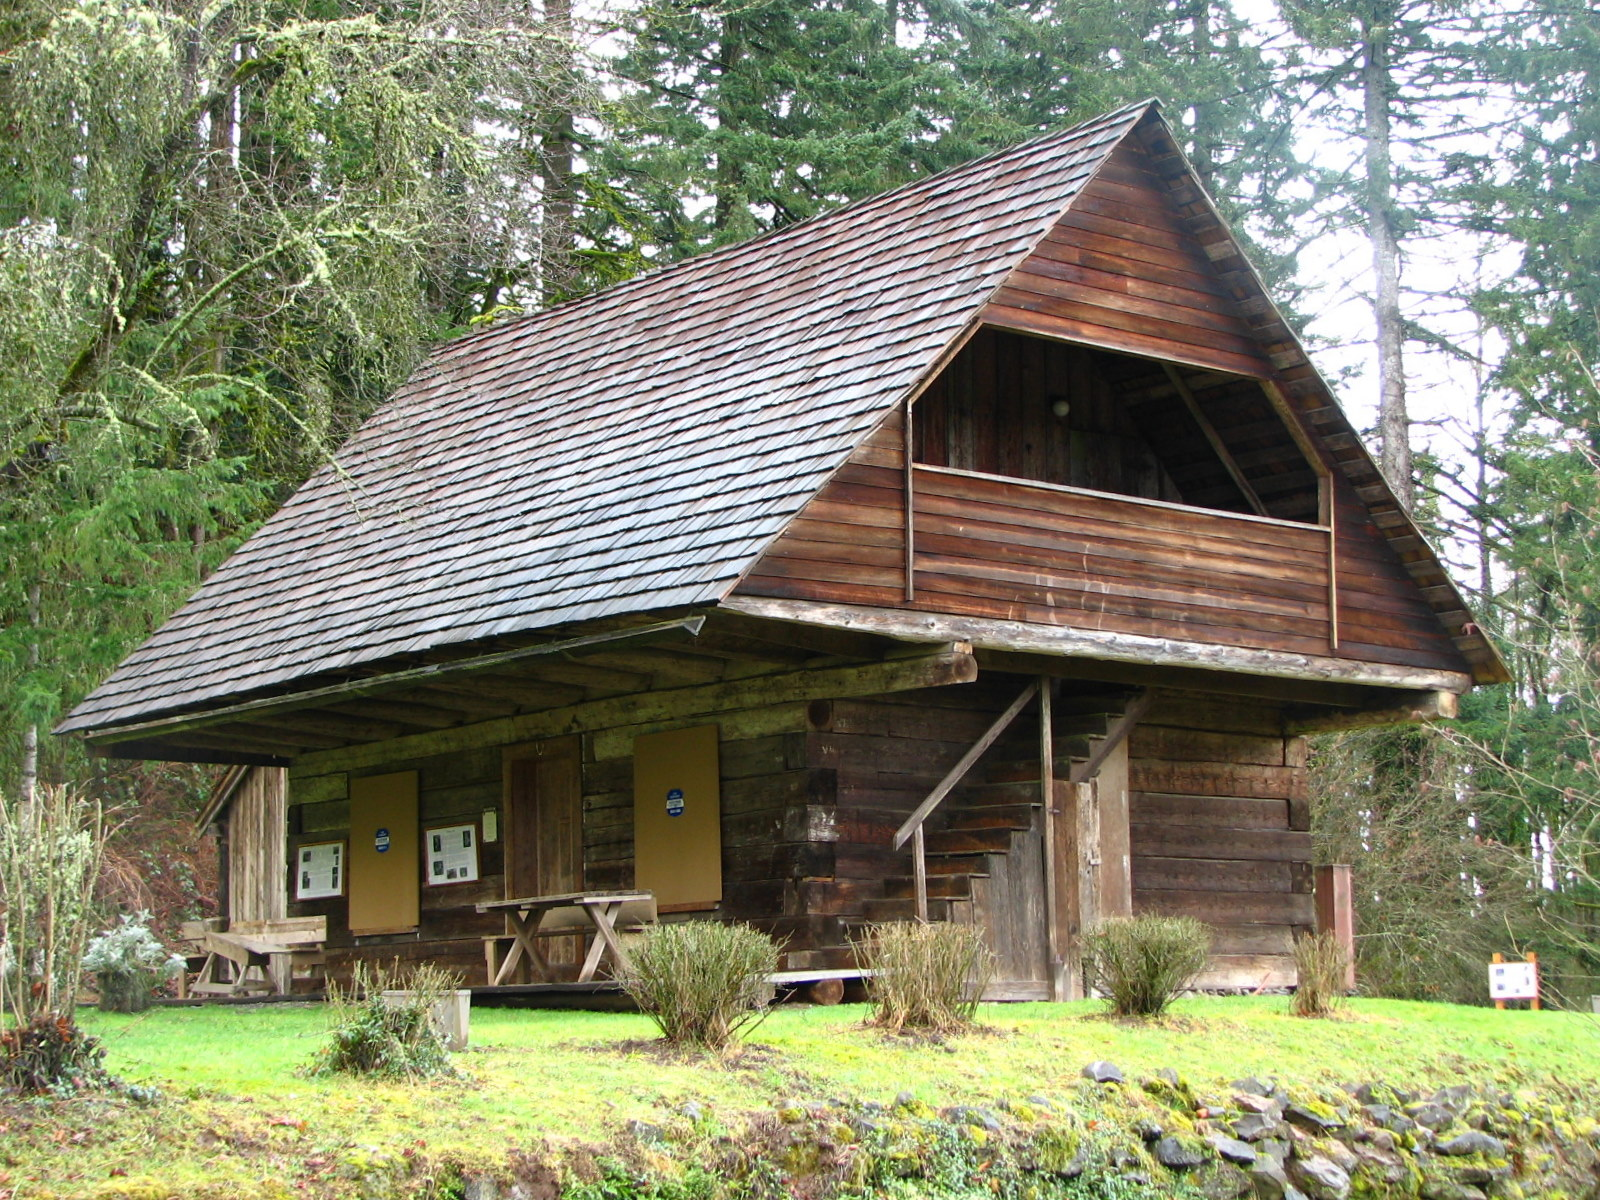 1000 images about cool log cabins cottages on pinterest for House log